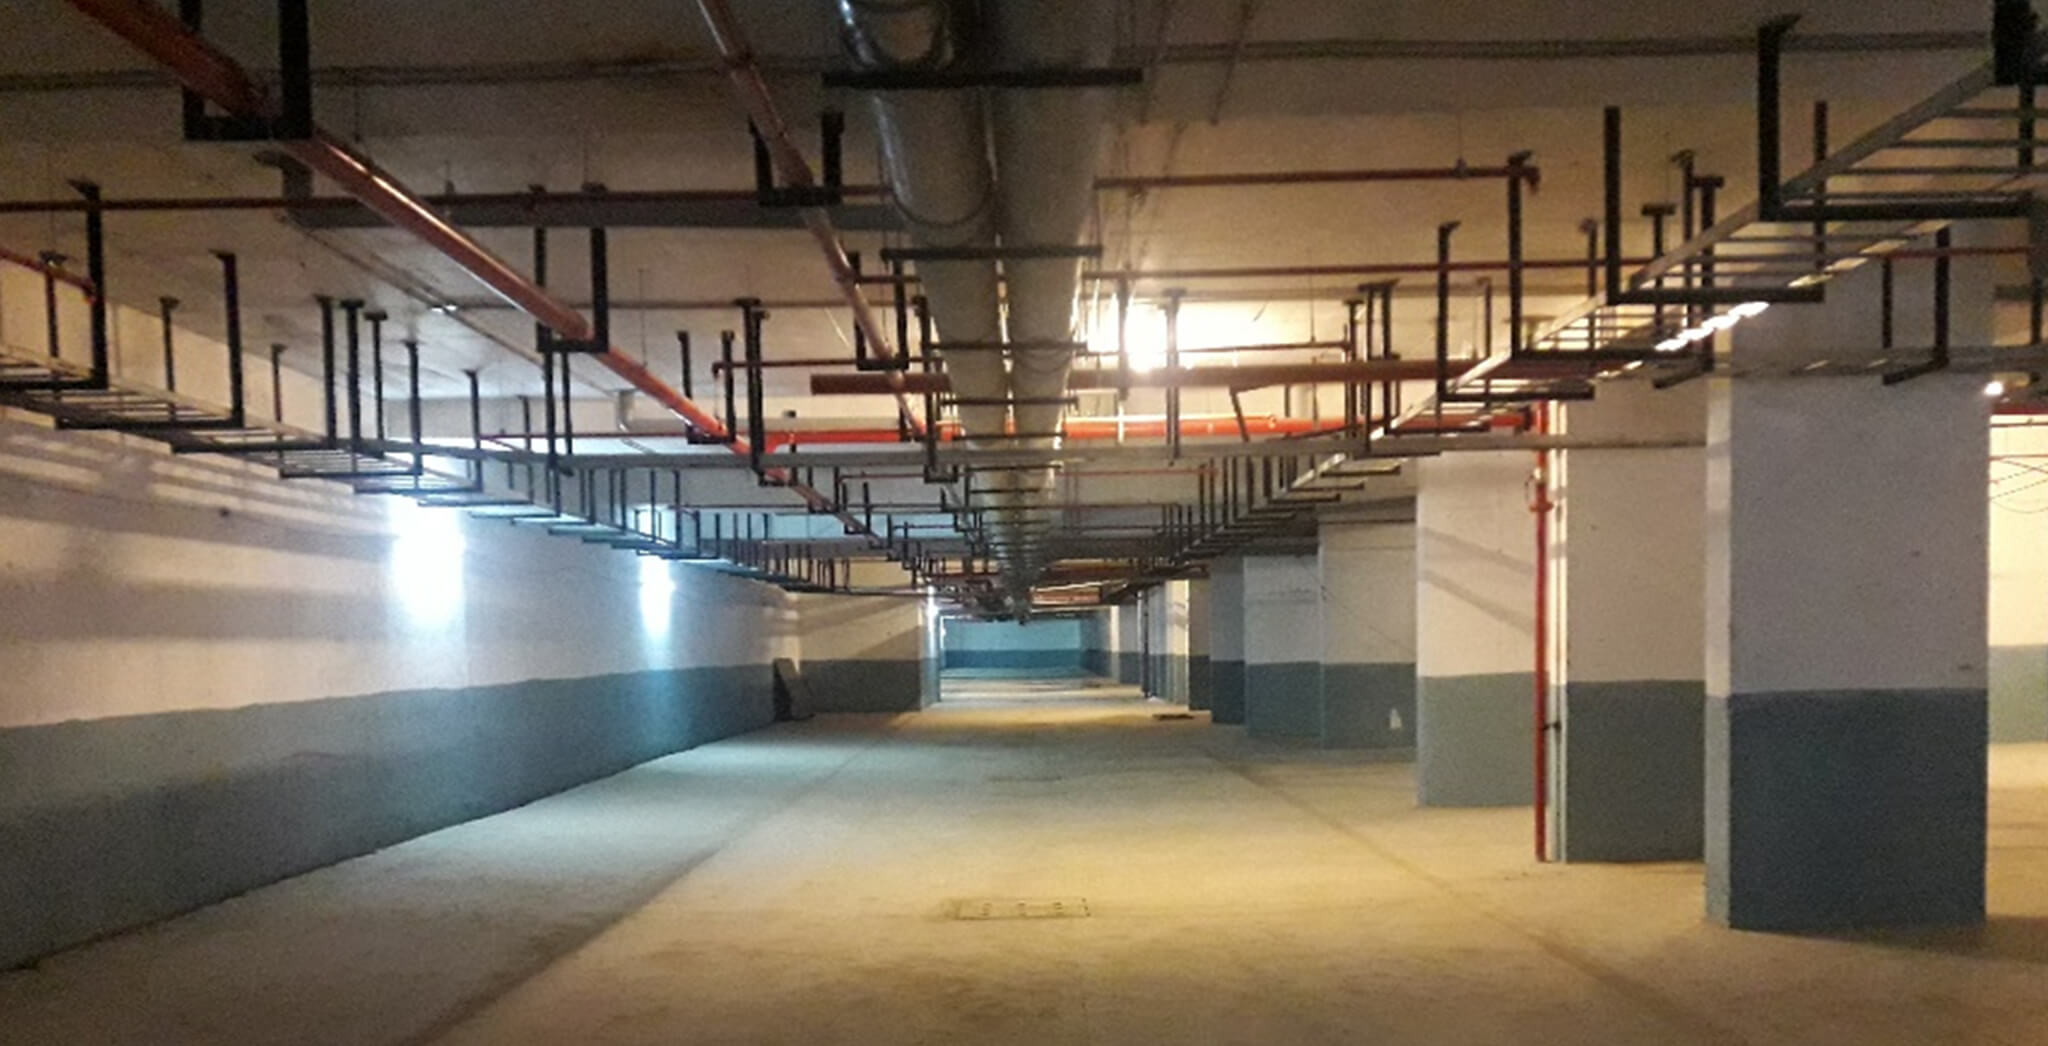 Nov 2018 - Basement: Fire-fighting works and plumbing works completed